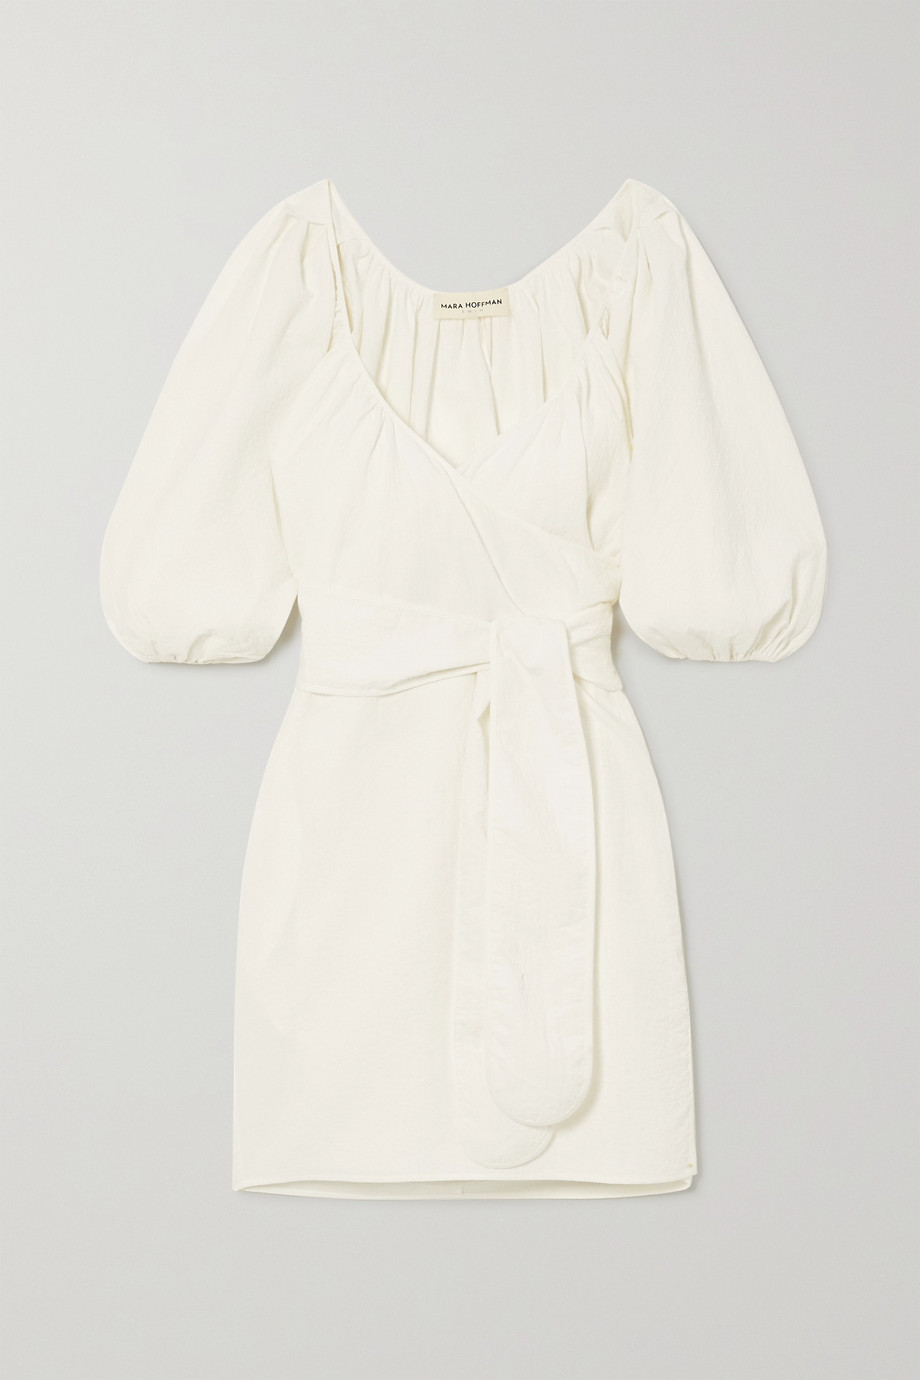 MARA HOFFMAN + NET SUSTAIN x LG Electronics Coletta crinkled organic cotton wrap mini dress